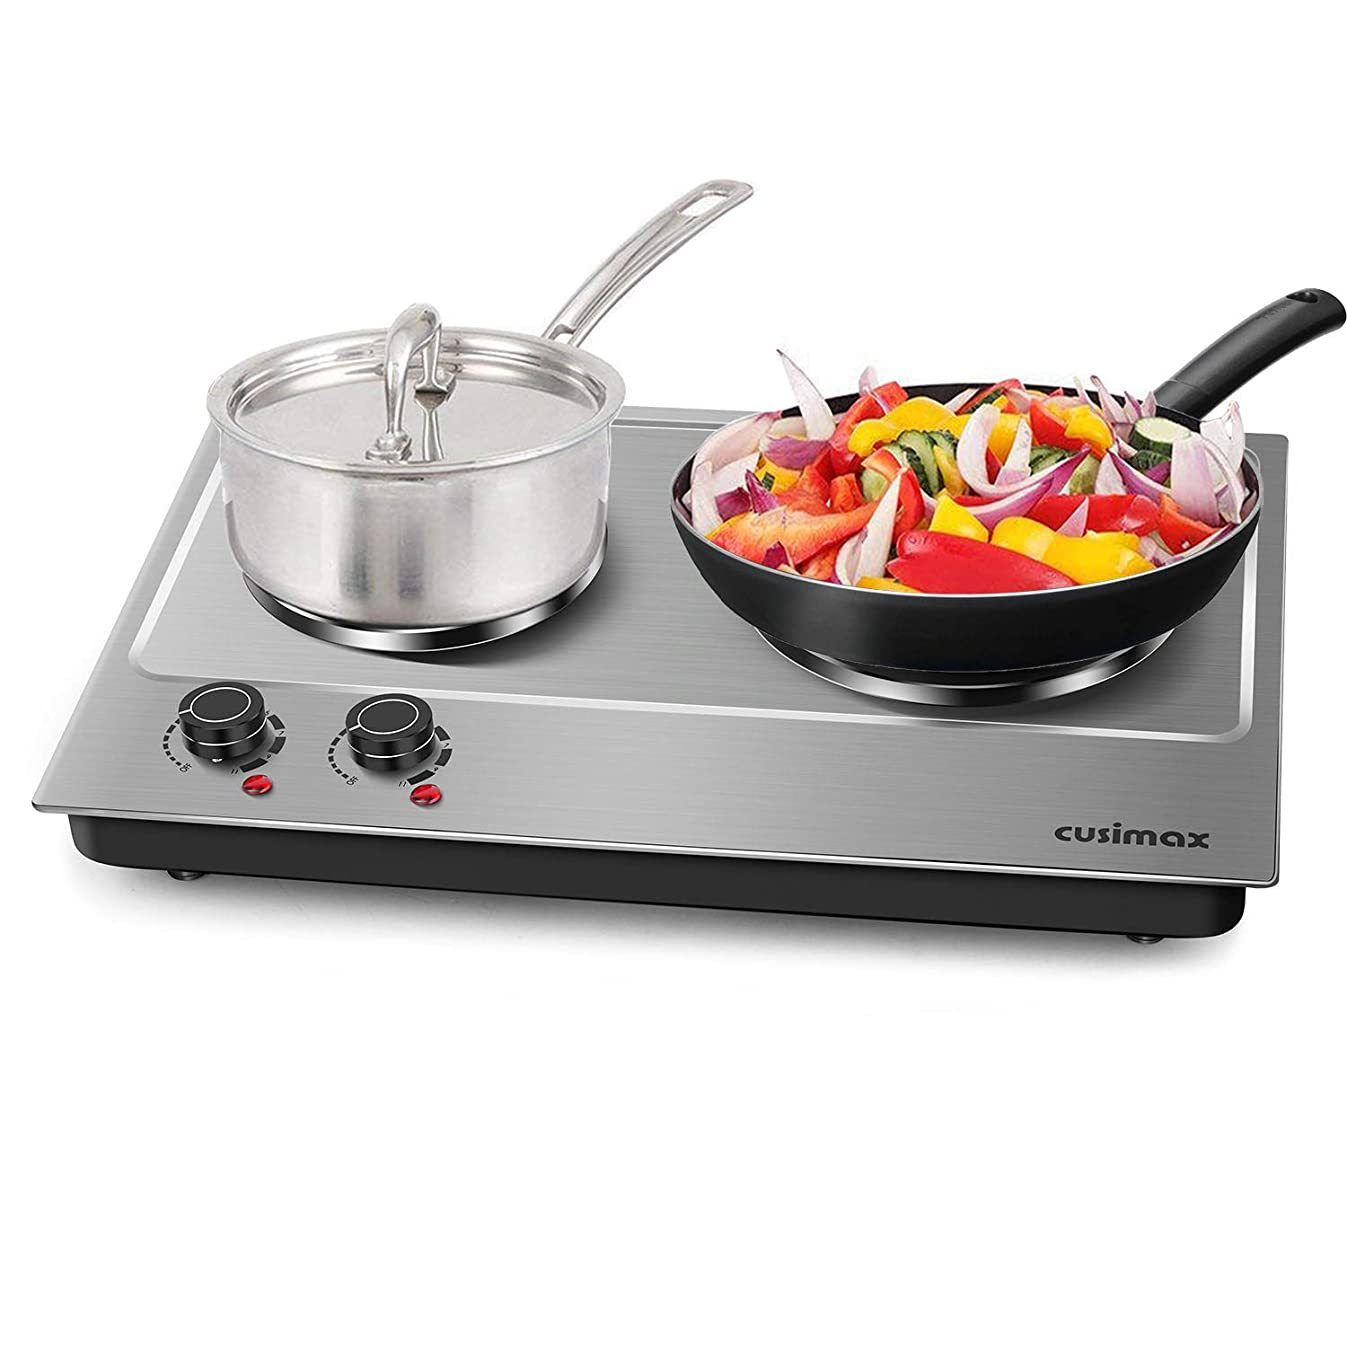 Cusimax Hot Plate Electric Burner Double Burner Cast Iron Heating Plate Portable Double Burner Outdoor Electric Stove 1800W with Adjustable Temperature Control Non-Slip Rubber Feet Black Stainless Steel Easy To Clean Upgraded Version